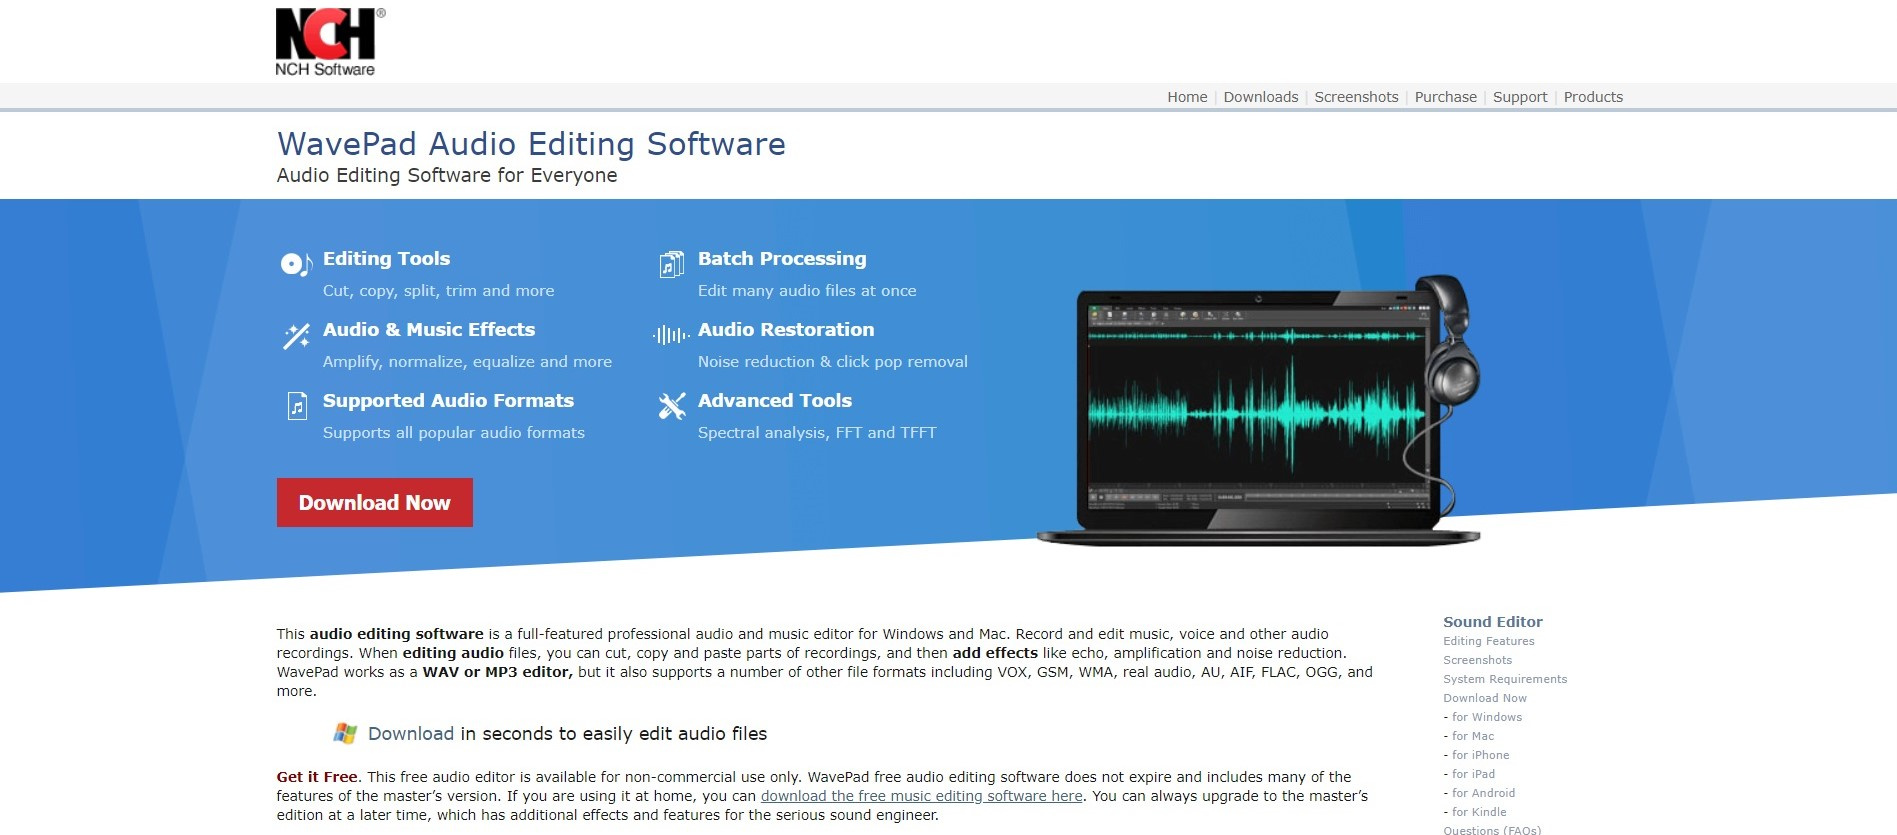 Top 7 audio editing software for PC | Candid.Technology